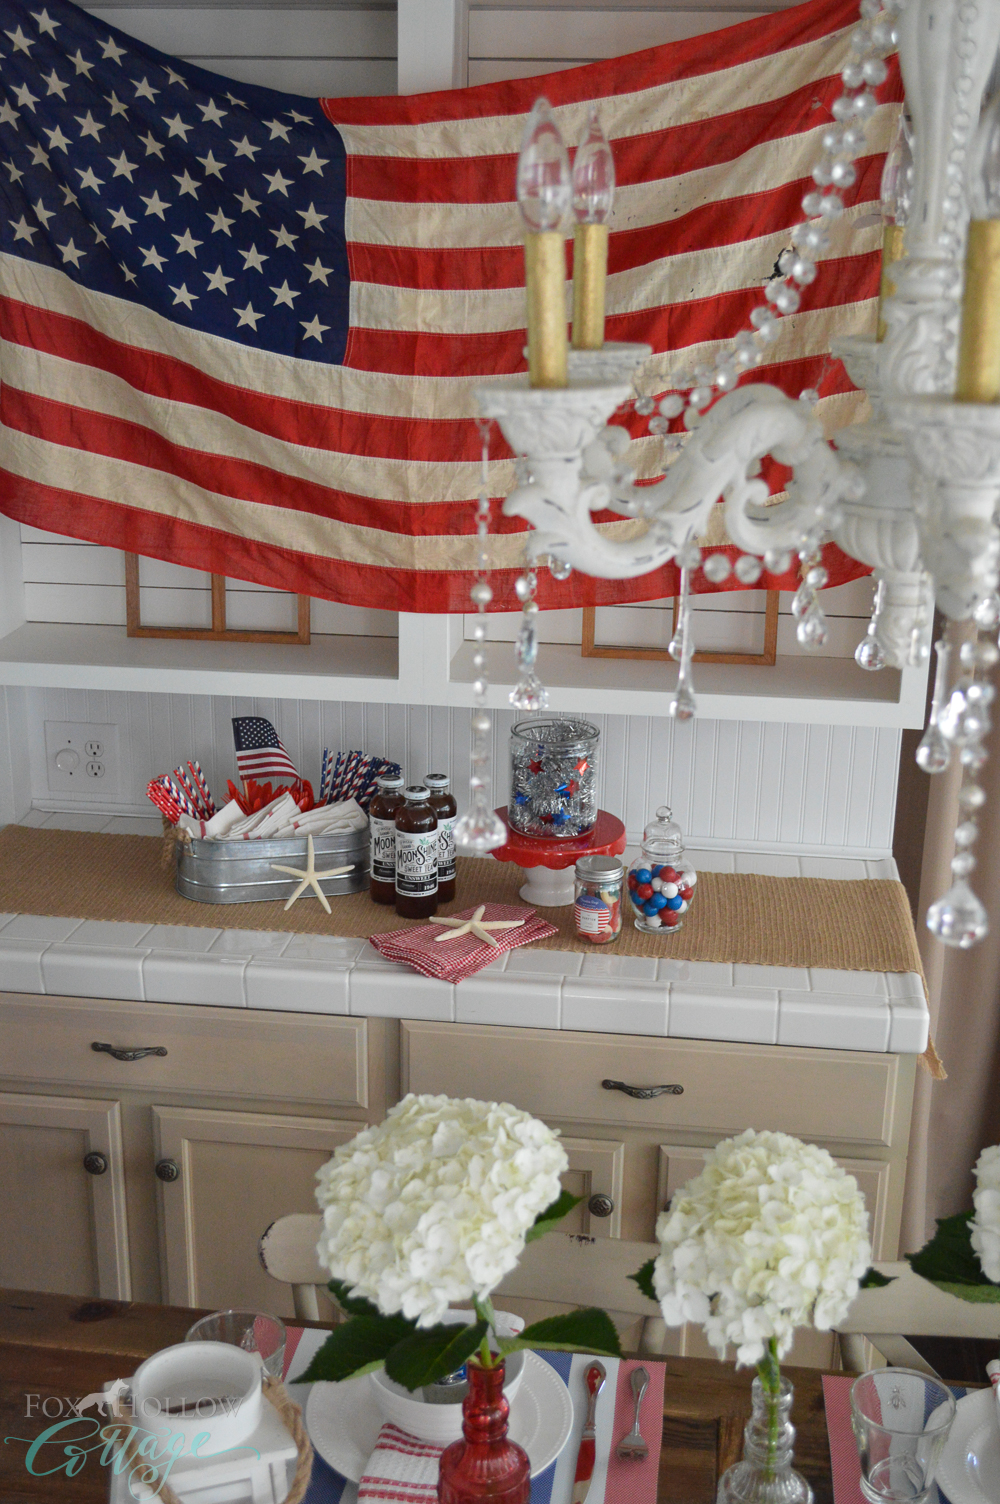 Vintage flag, Chandelier... Fourth of July, Patriotic Home Decorating Ideas